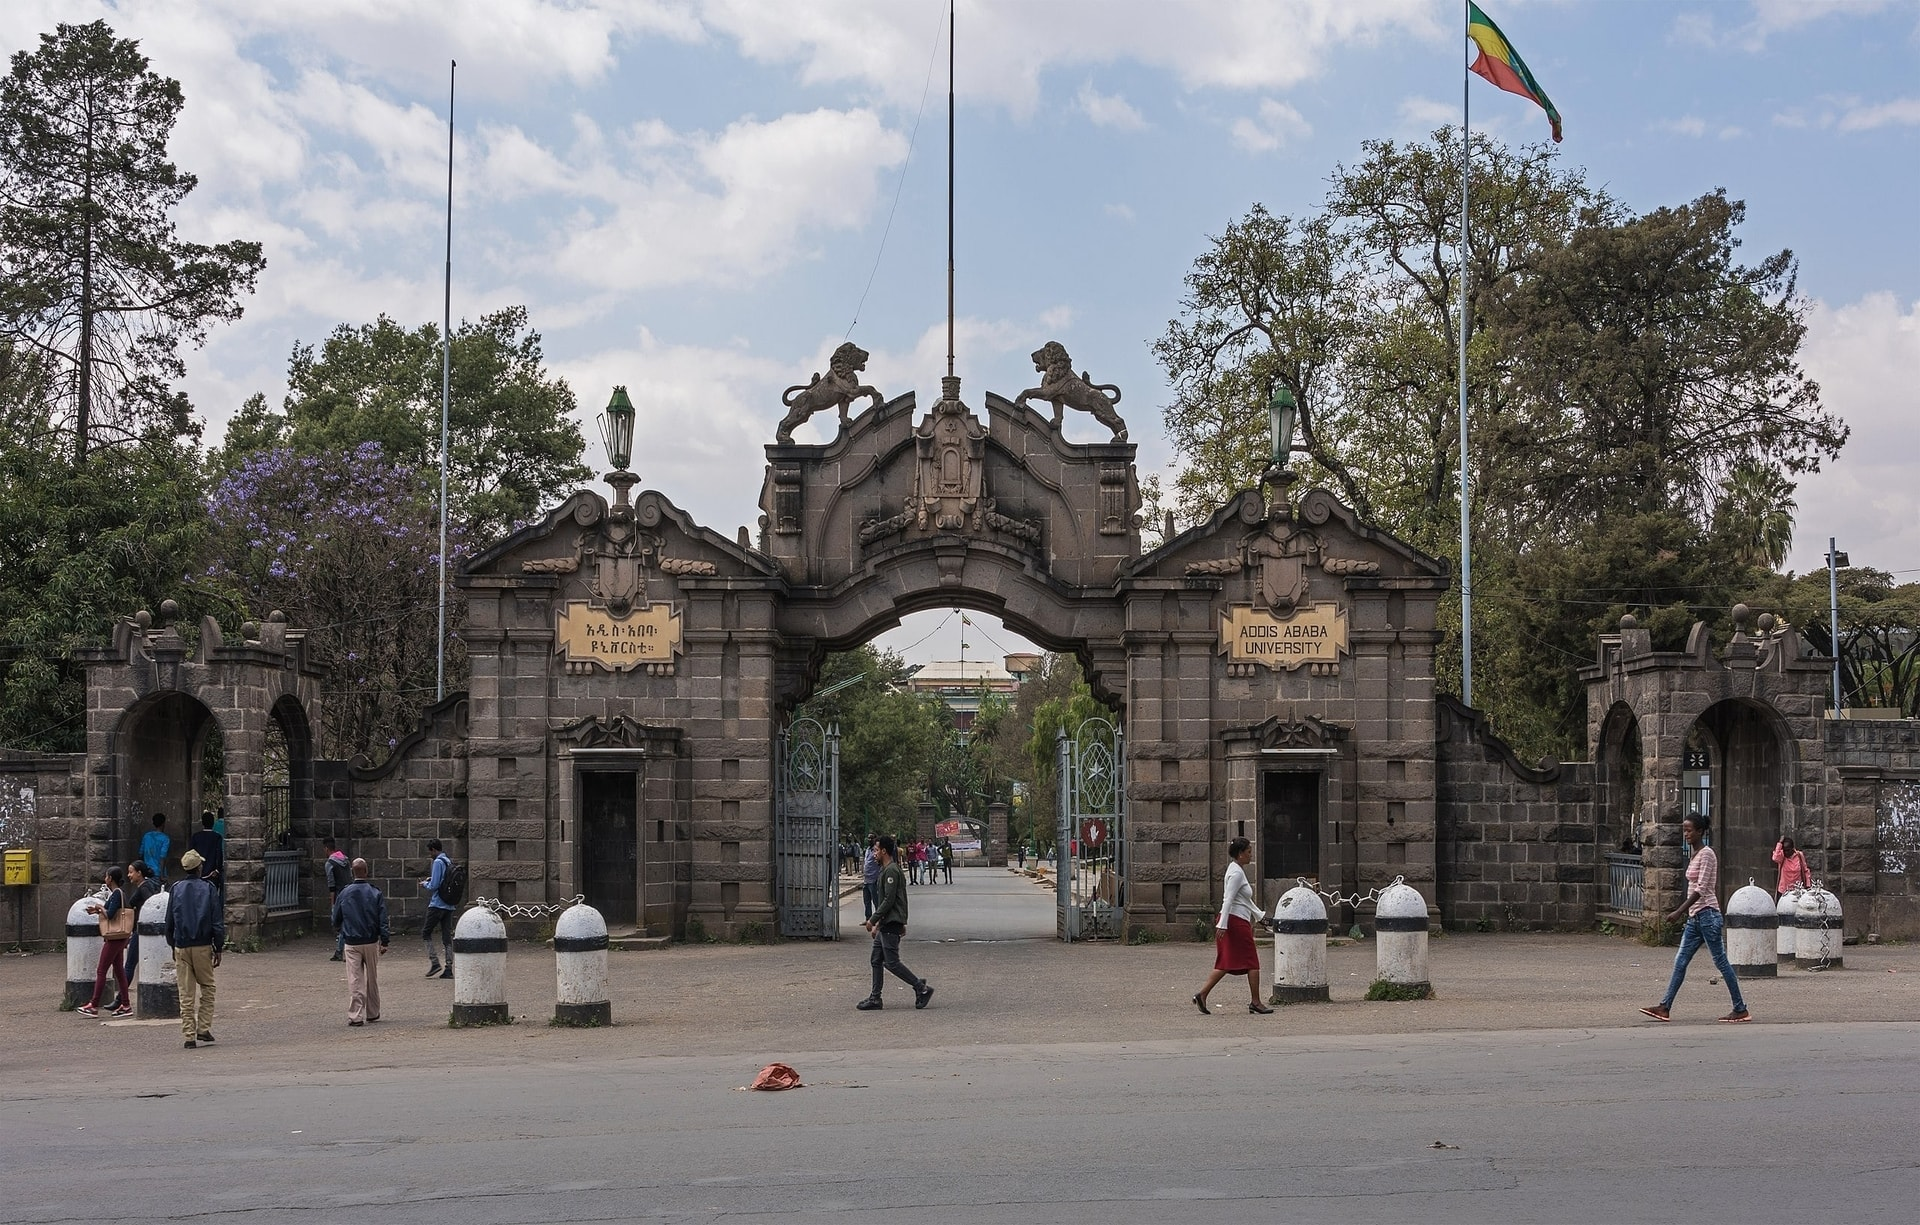 Data Science Africa 2019 for East Africa will take place in Ethiopia